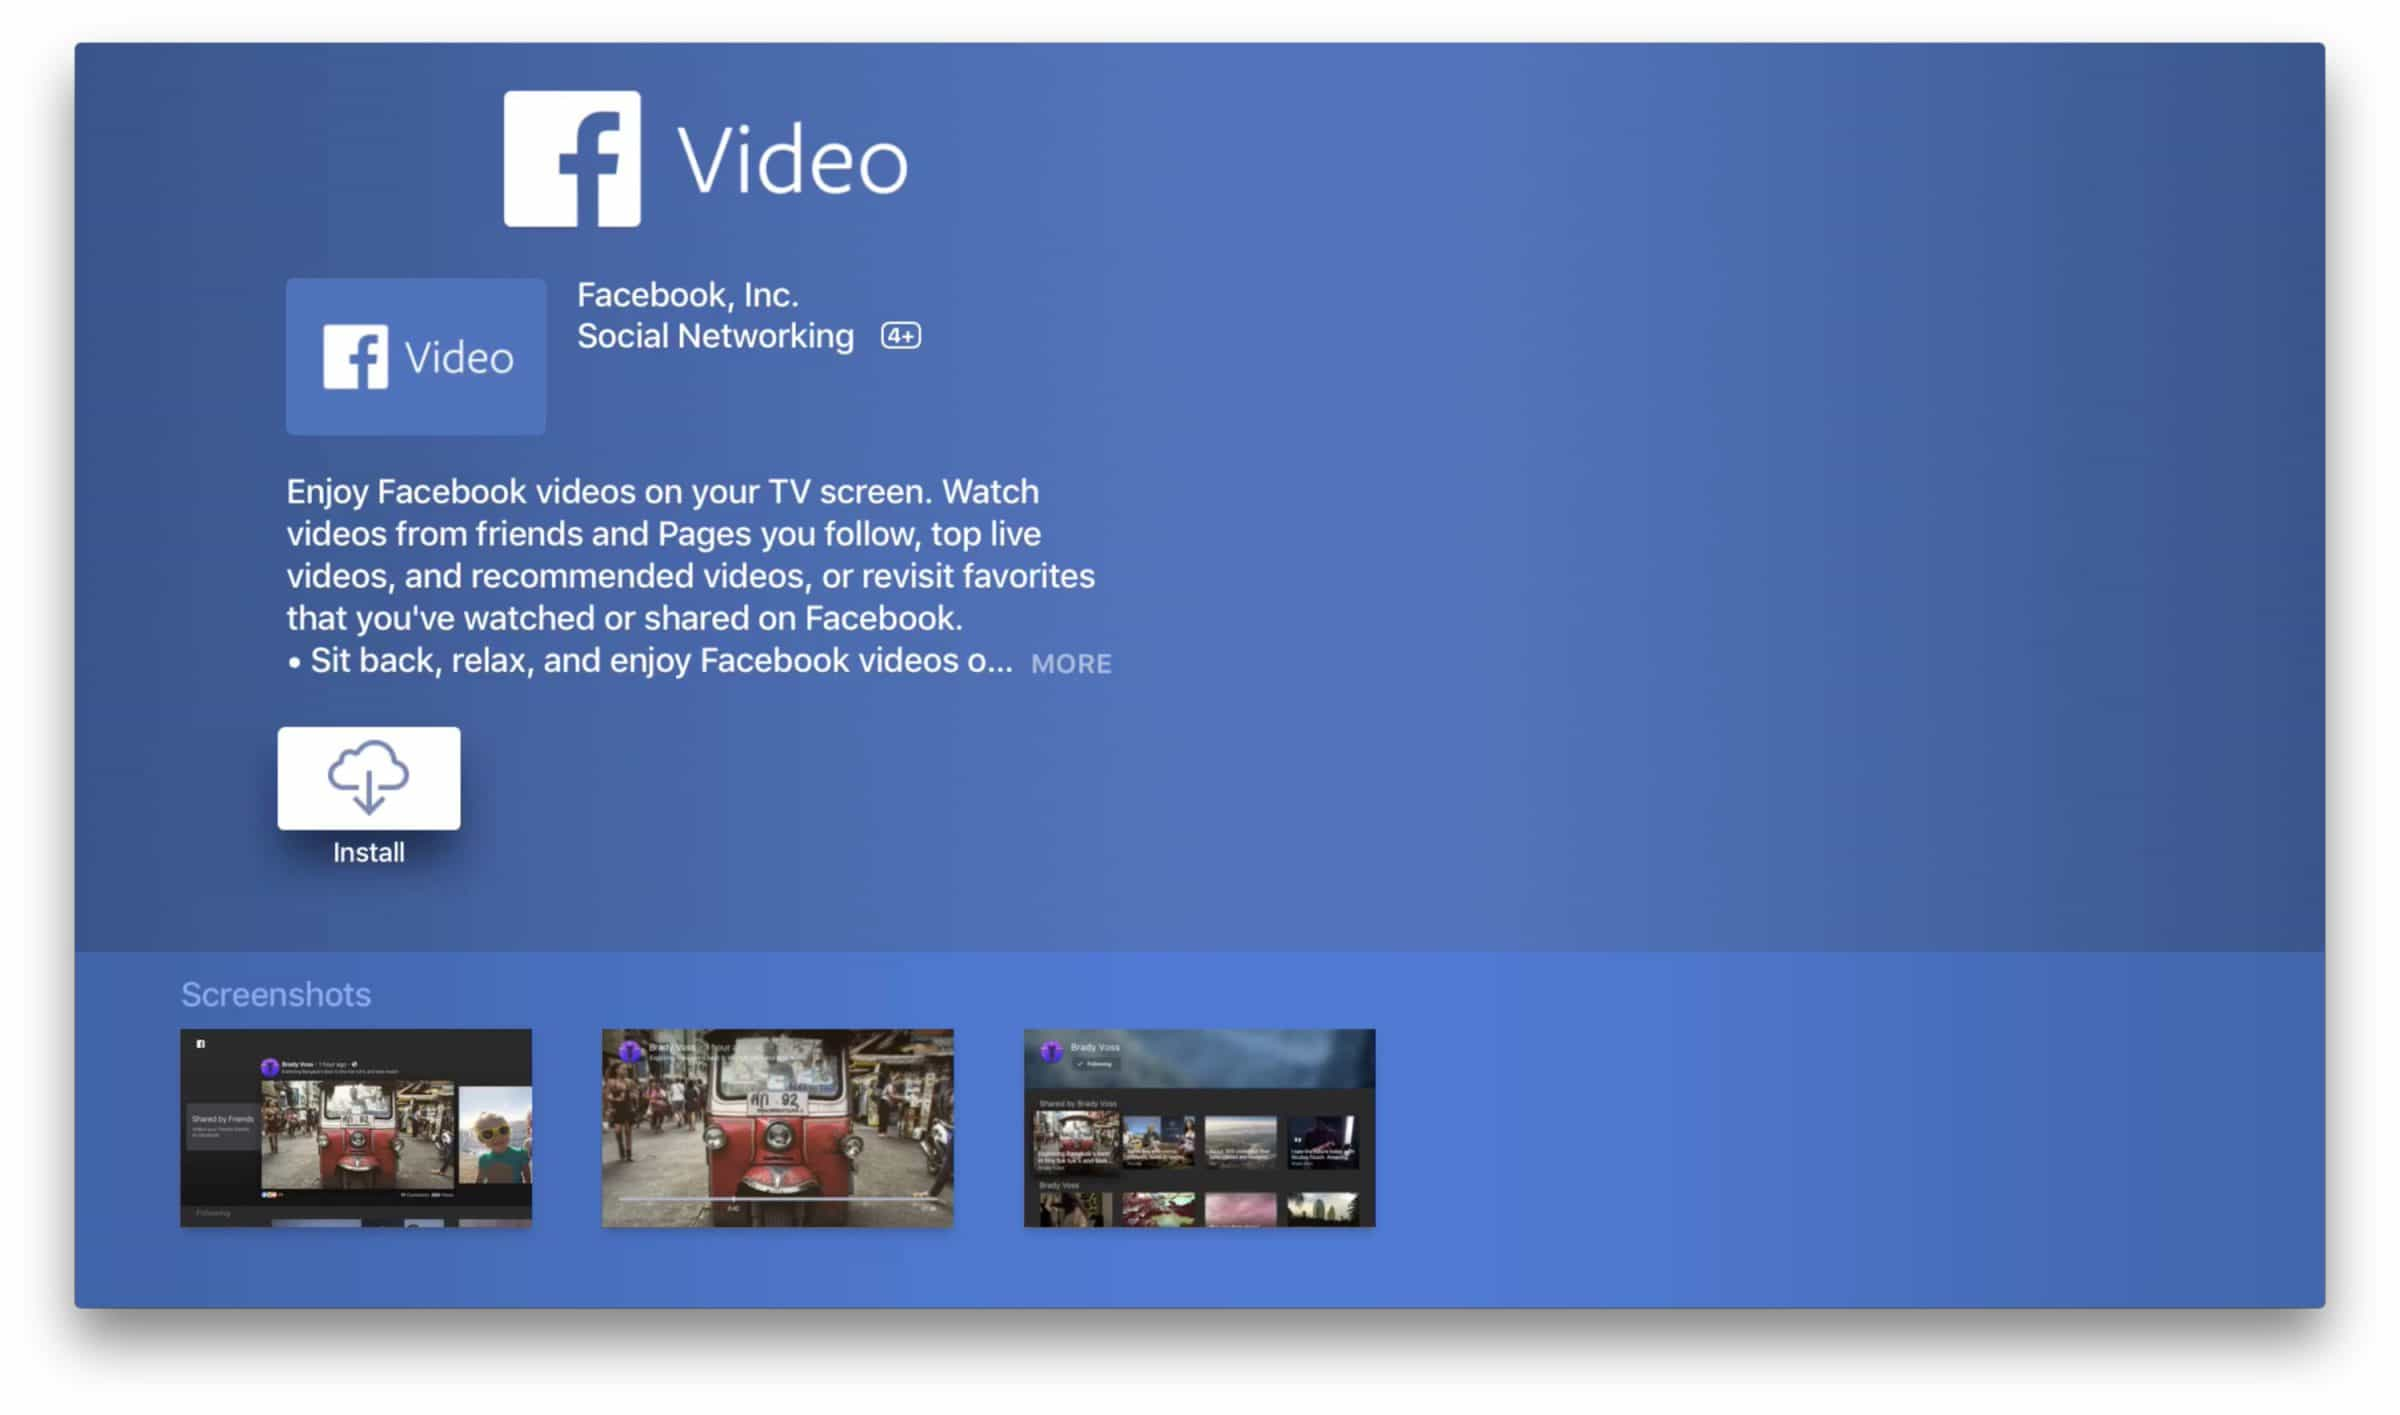 facebook-video-apple-tv-020317